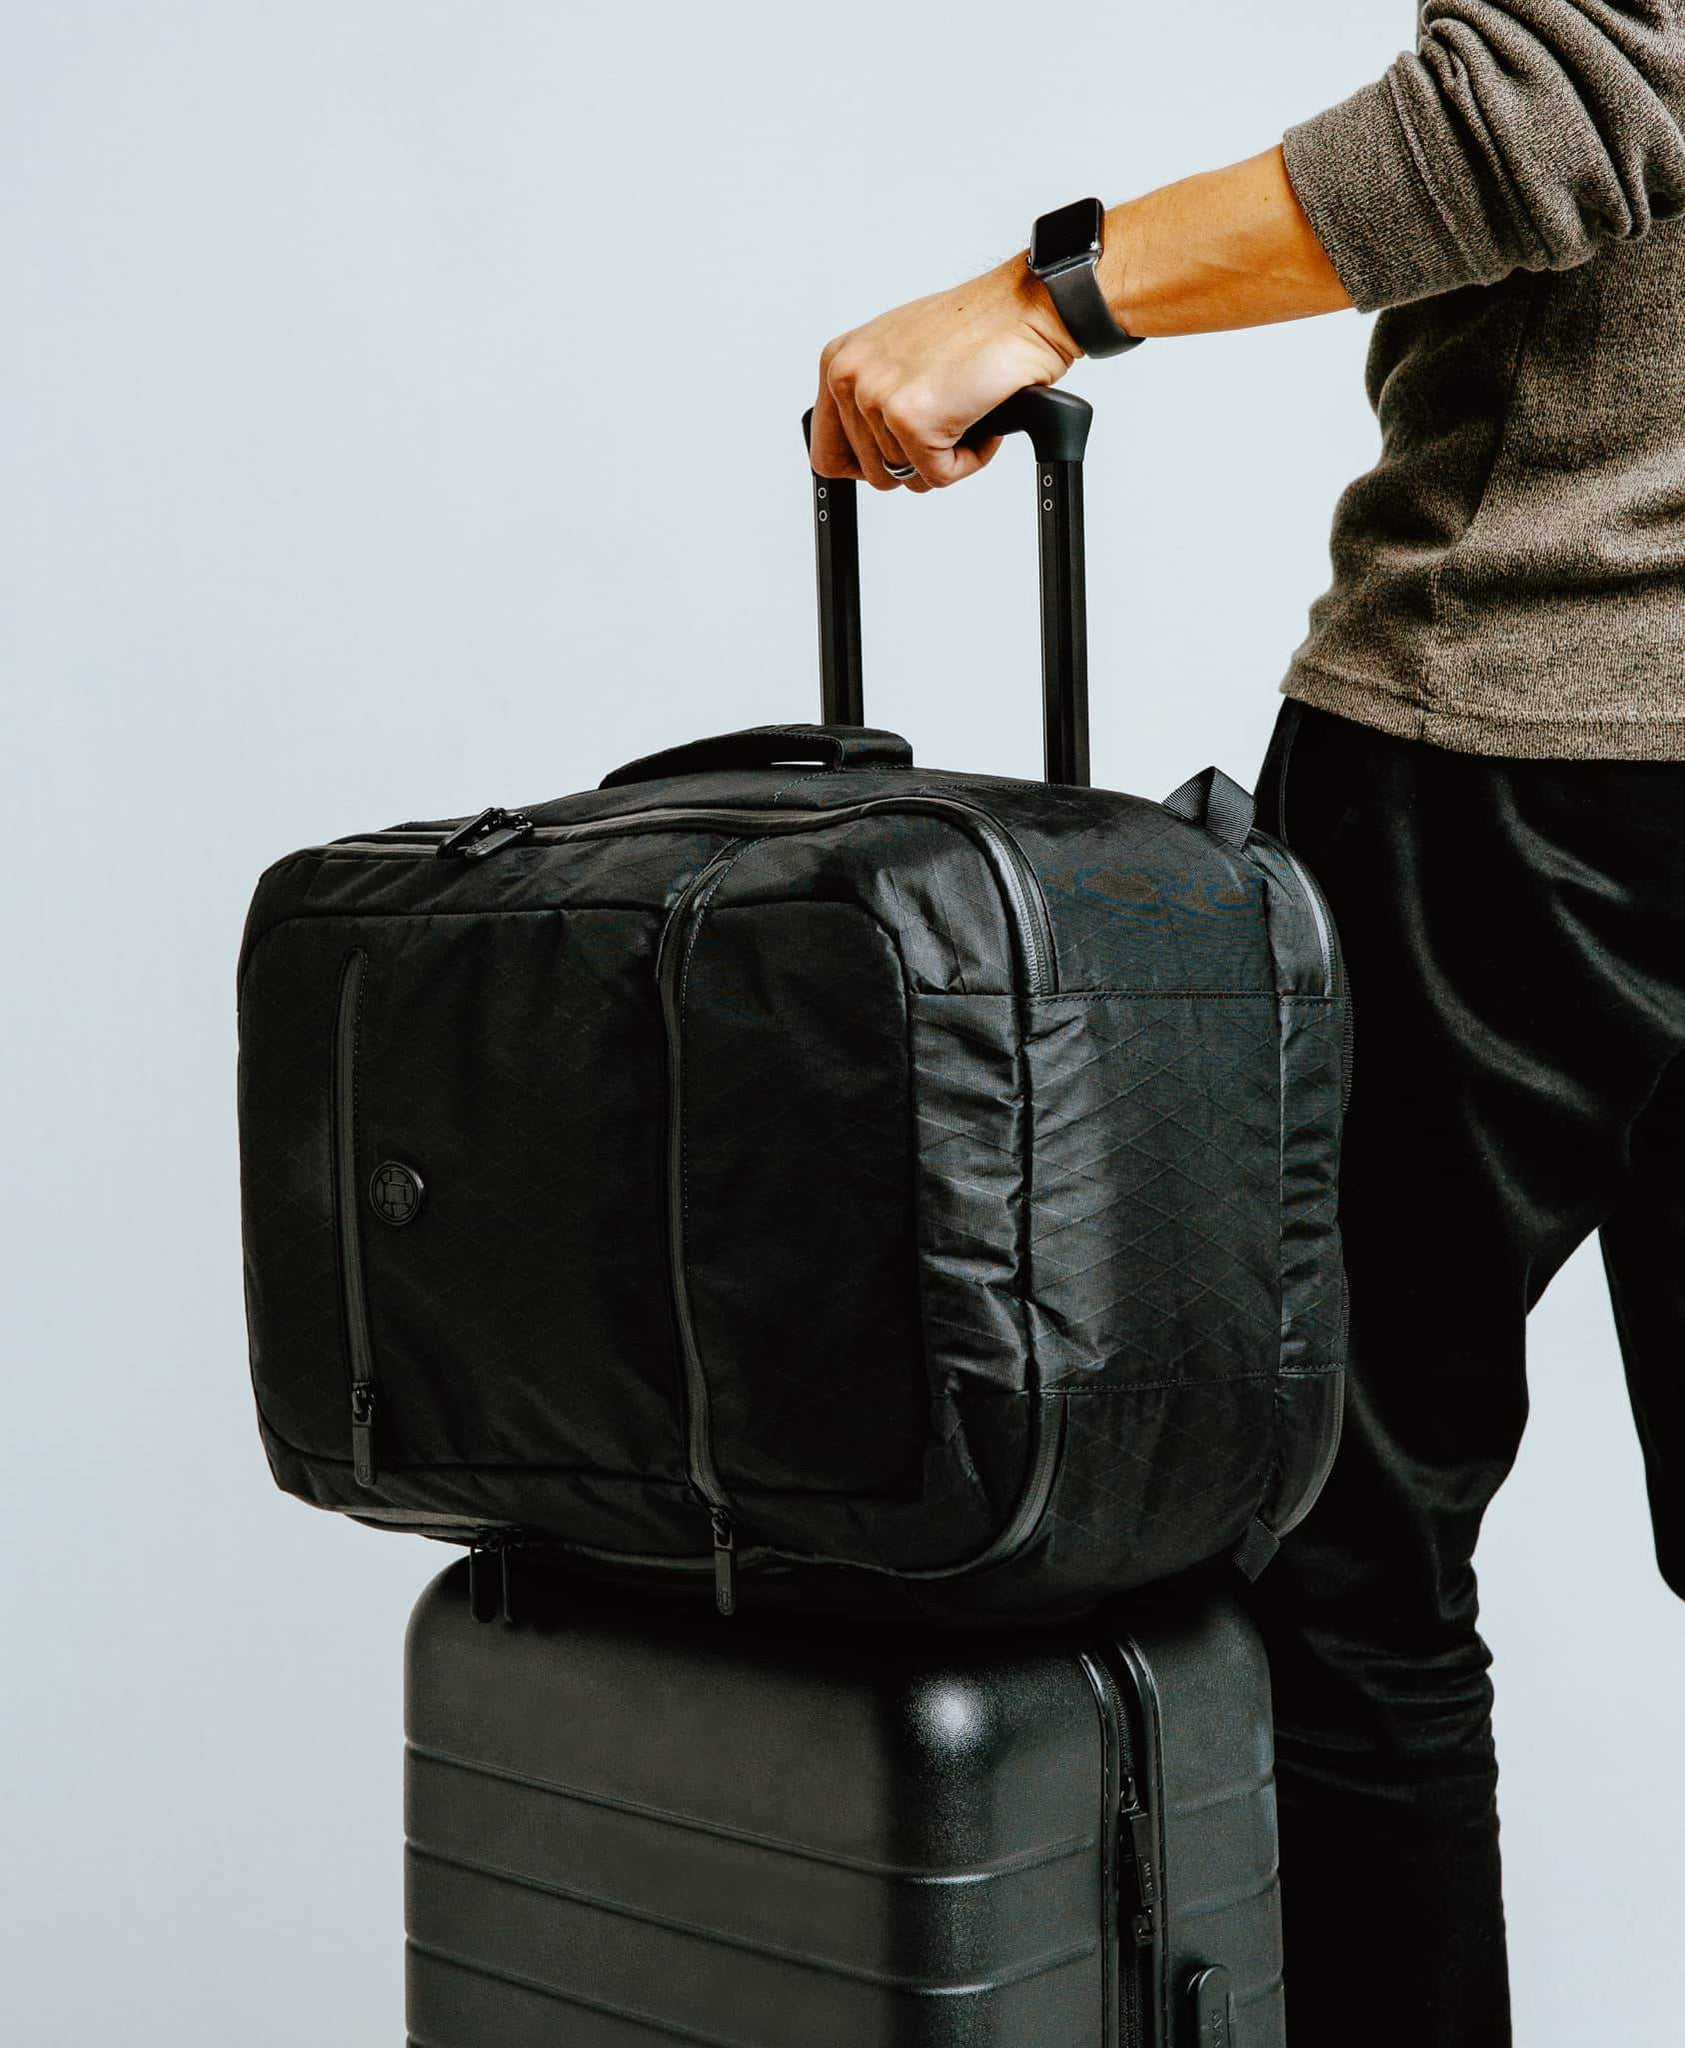 product/ Passthrough sleeve pairs with a rolling suitcase